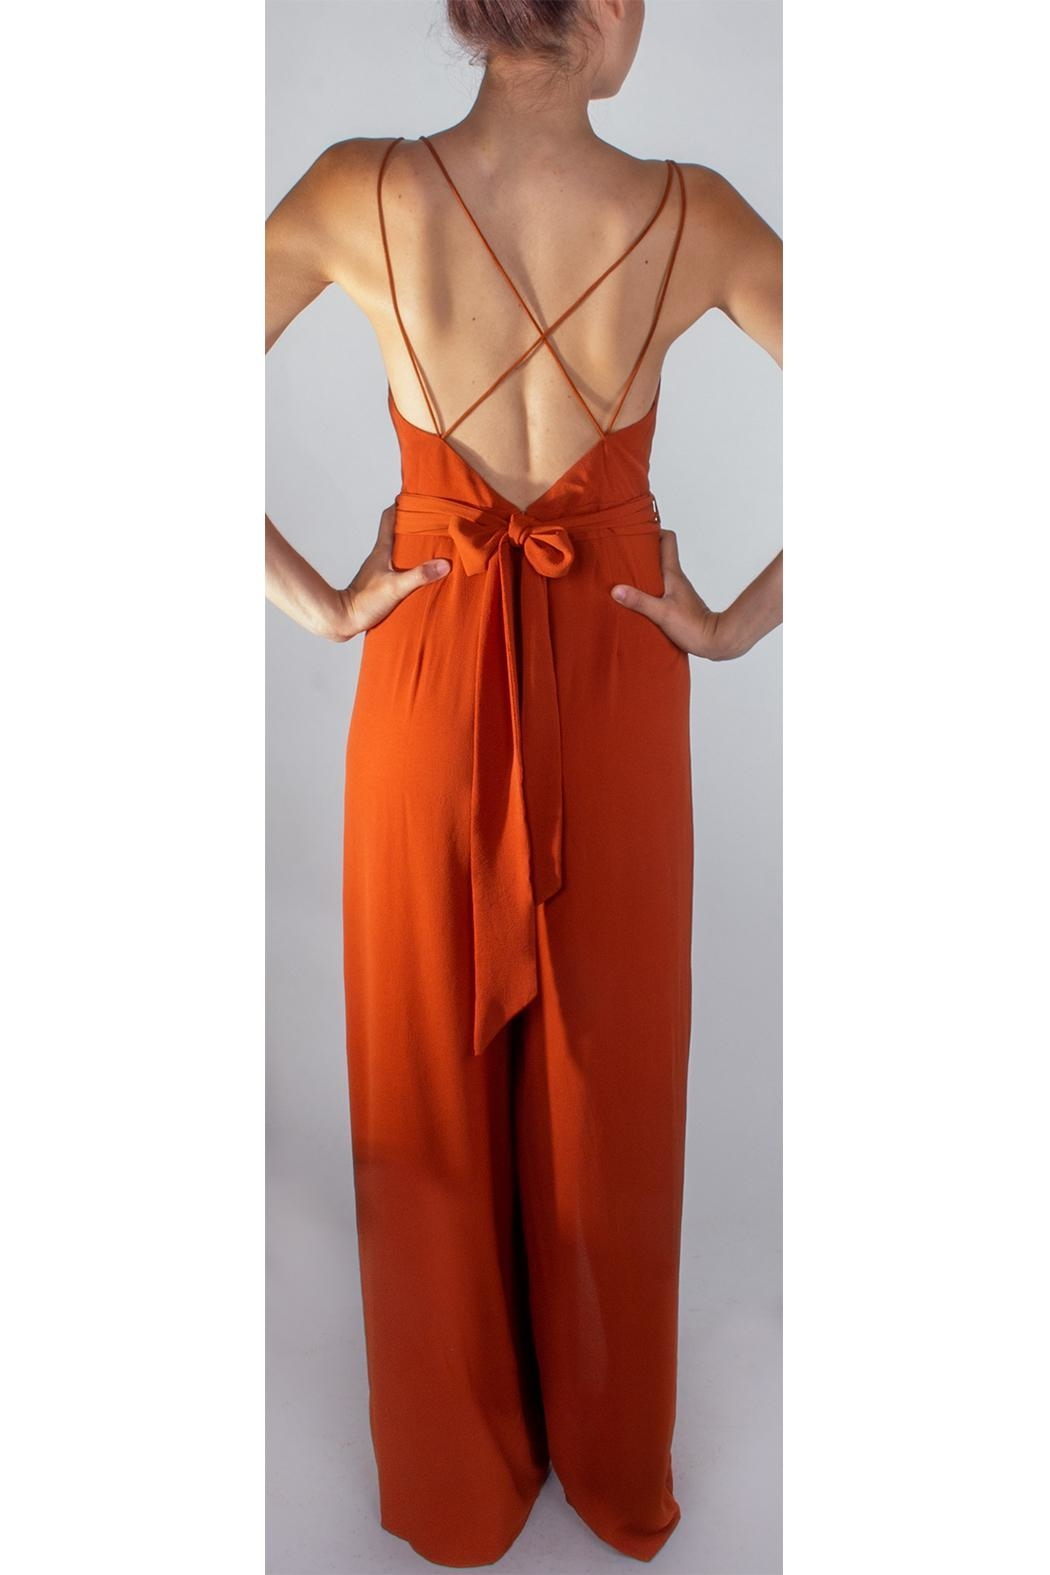 c6d829f6bfc luxxel Rust Dragonfly Jumpsuit from Los Angeles by Goldie s — Shoptiques